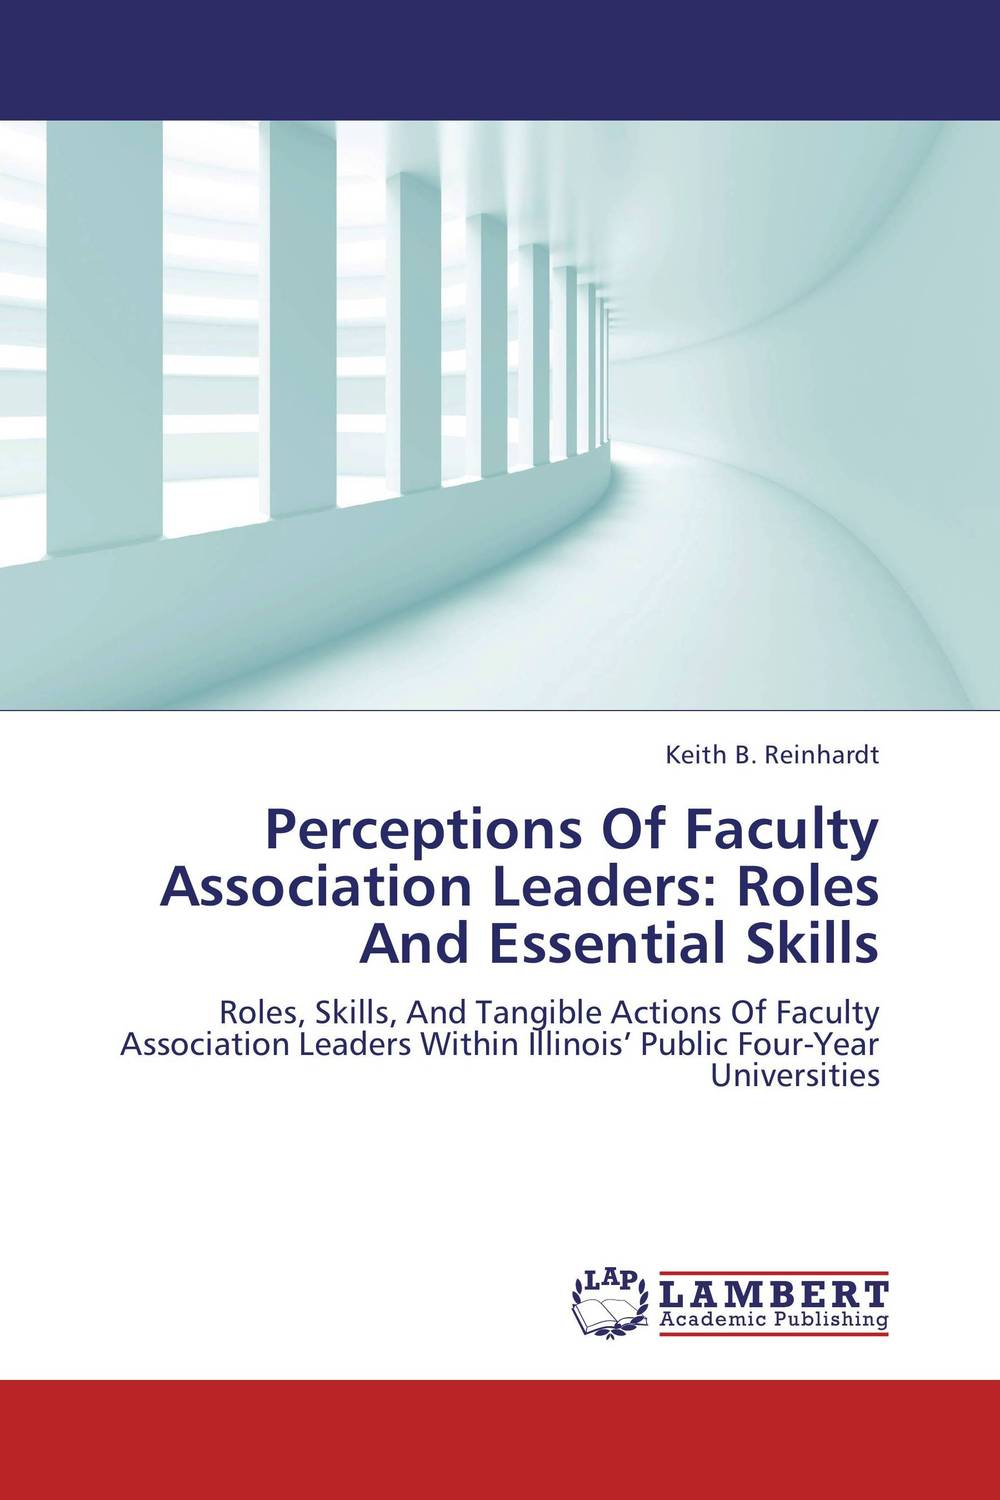 Perceptions Of Faculty Association Leaders: Roles And Essential Skills paula boehme the perceptions of work life balance benefits